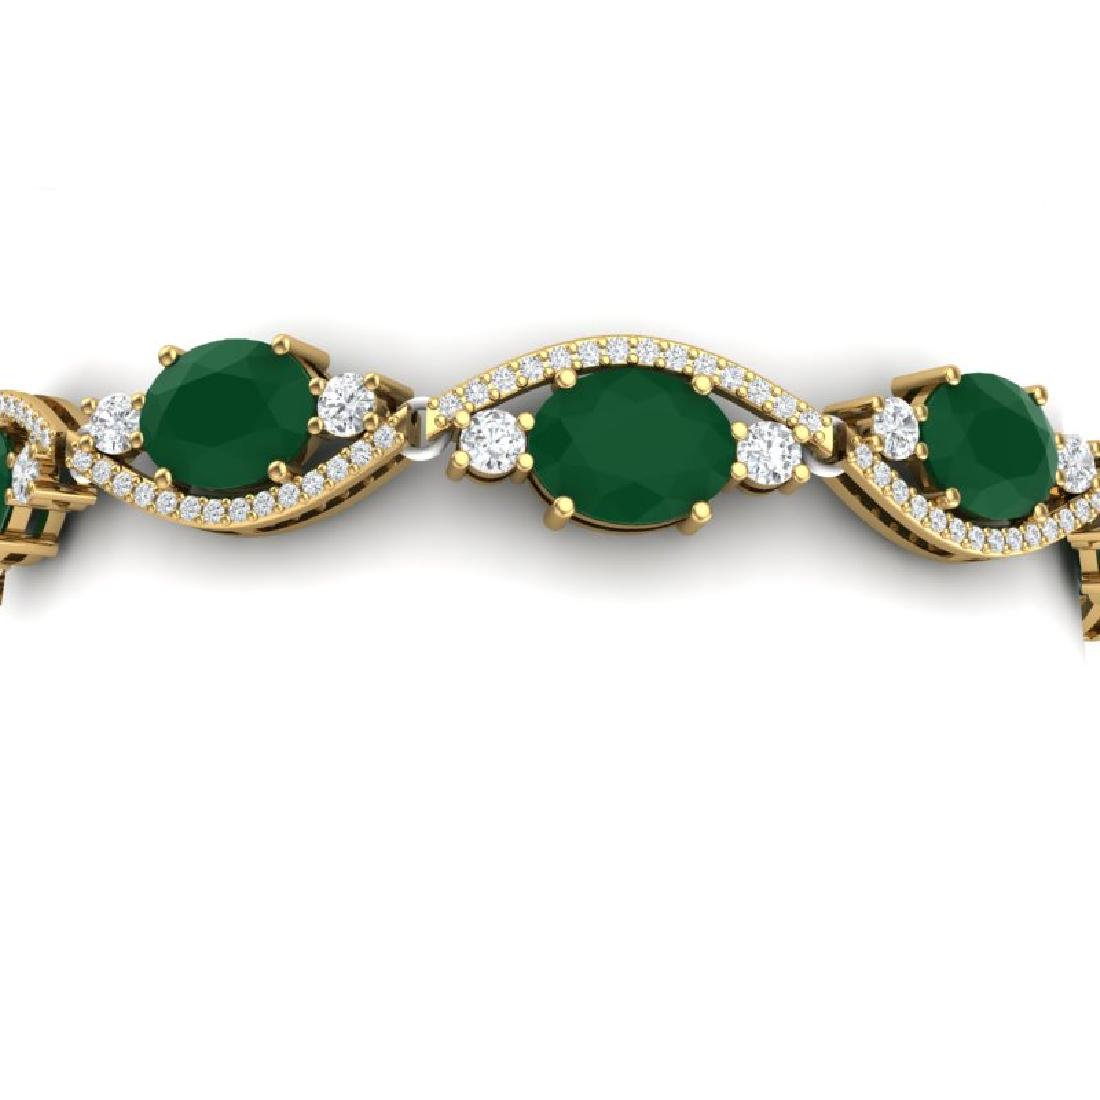 22.15 CTW Royalty Emerald & VS Diamond Bracelet 18K